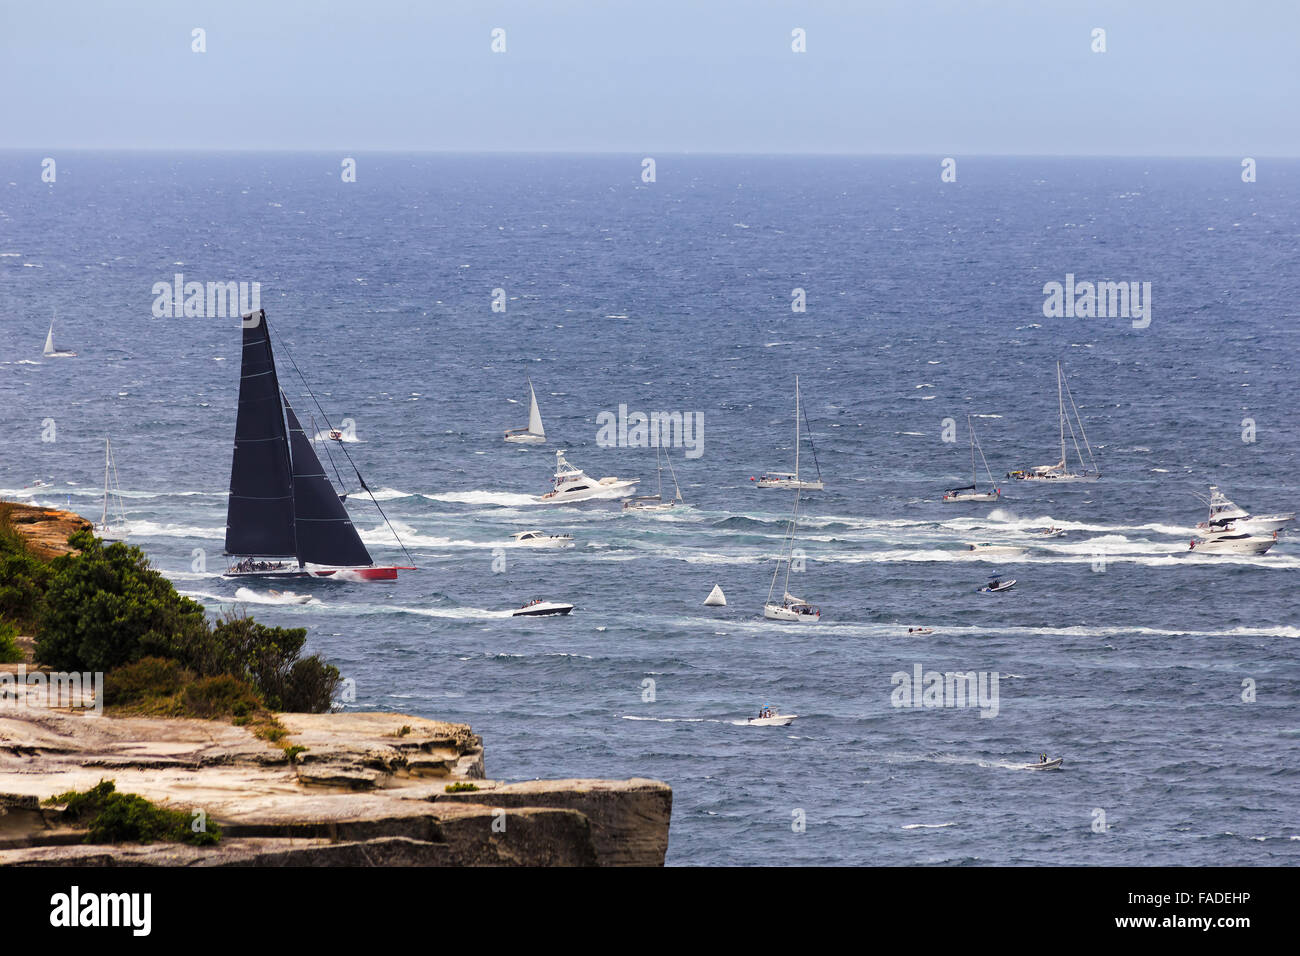 Leading super maxi yacht with black sail clearing from Sydney Habour Head surrounded by boats of spectators at Sydney - Stock Image